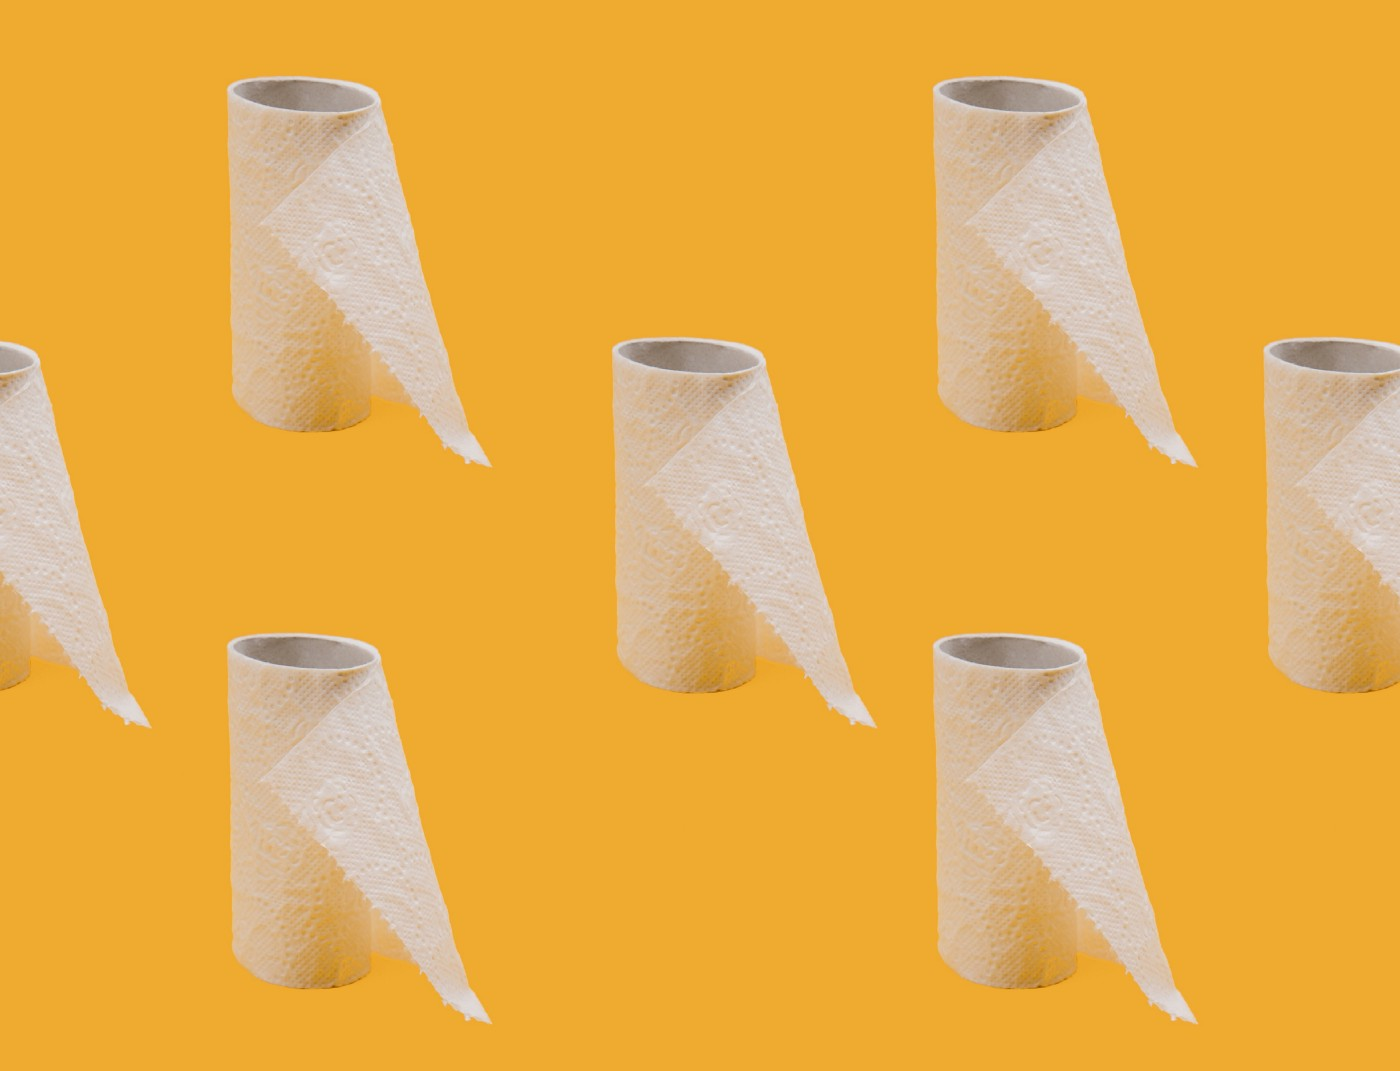 Rolls of almost used up toilet paper spaced in front of a orange background